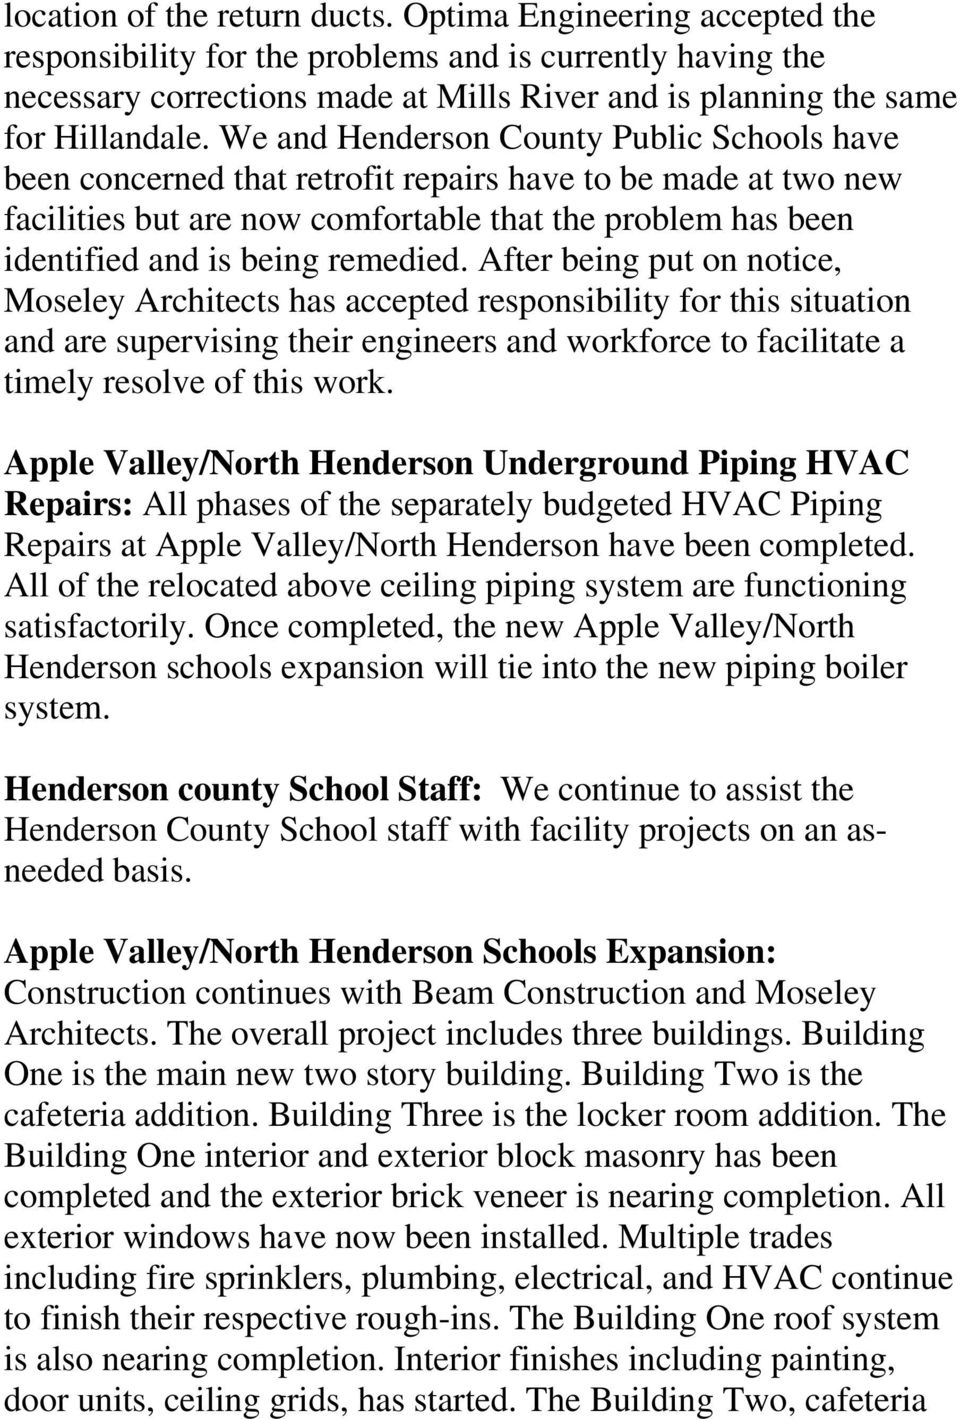 We and Henderson County Public Schools have been concerned that retrofit repairs have to be made at two new facilities but are now comfortable that the problem has been identified and is being